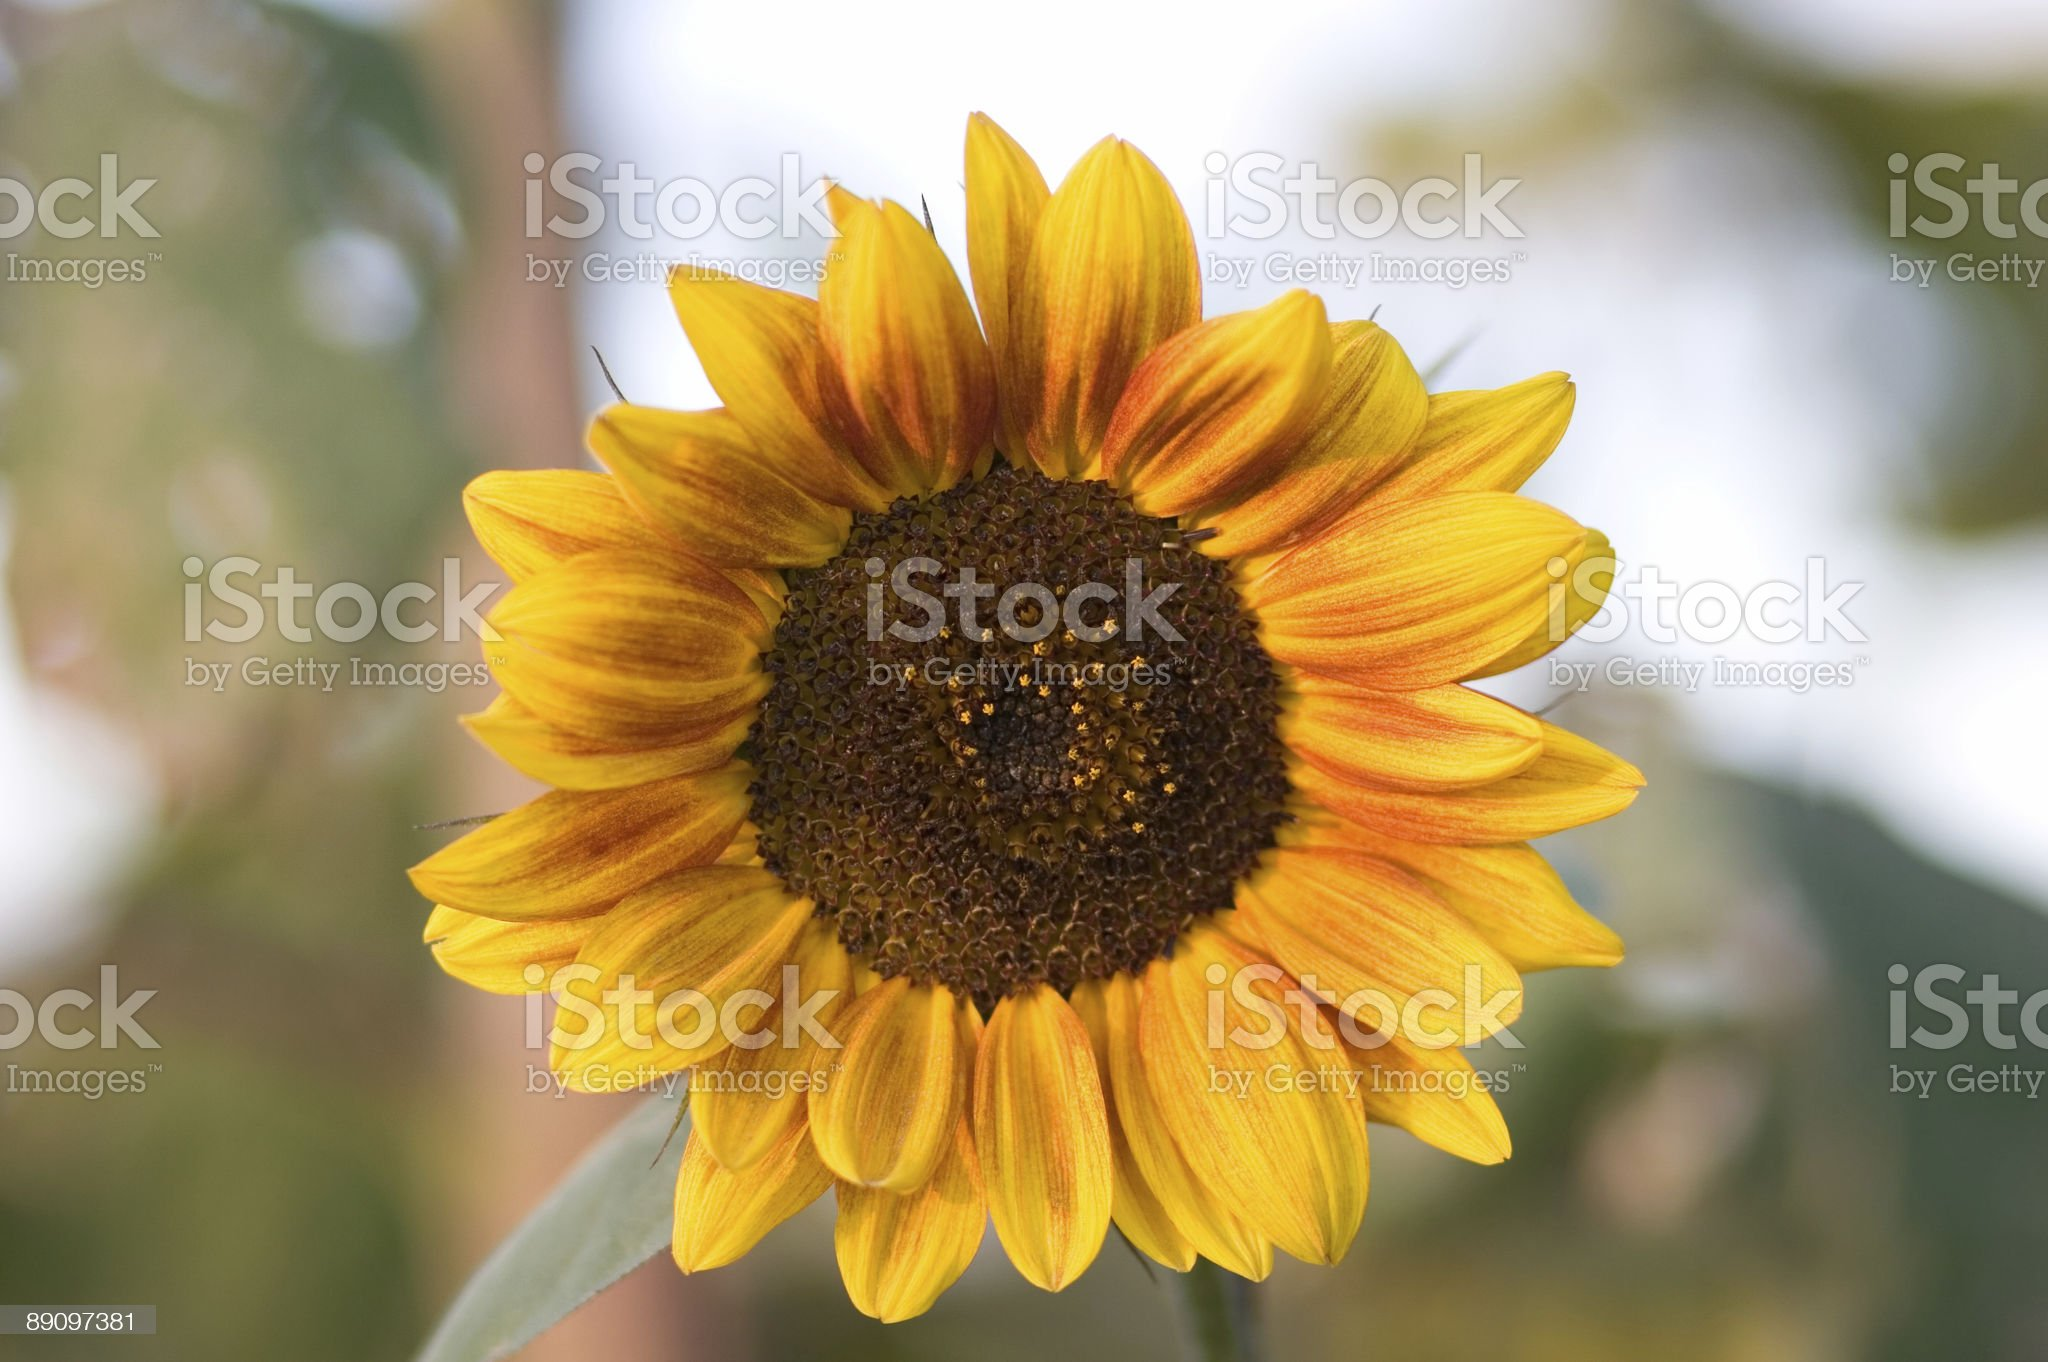 Sunflower with Clipping Path royalty-free stock photo